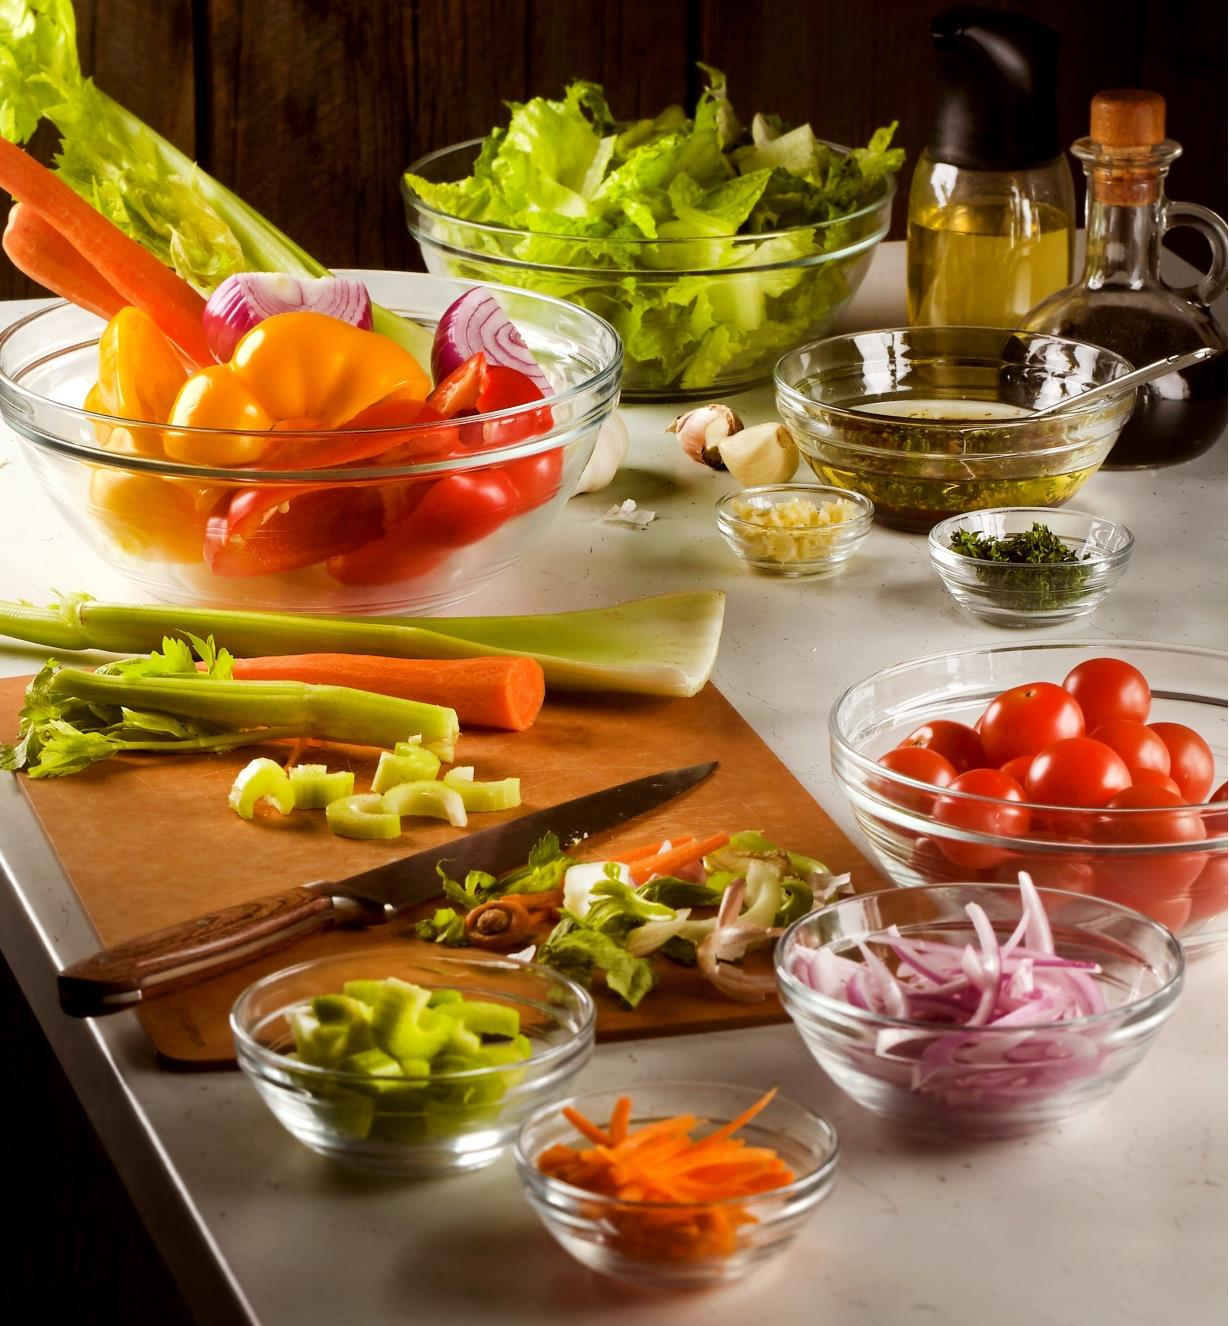 Various sizes of Duralex glass bowls used as prep bowls to hold oil and chopped vegetables